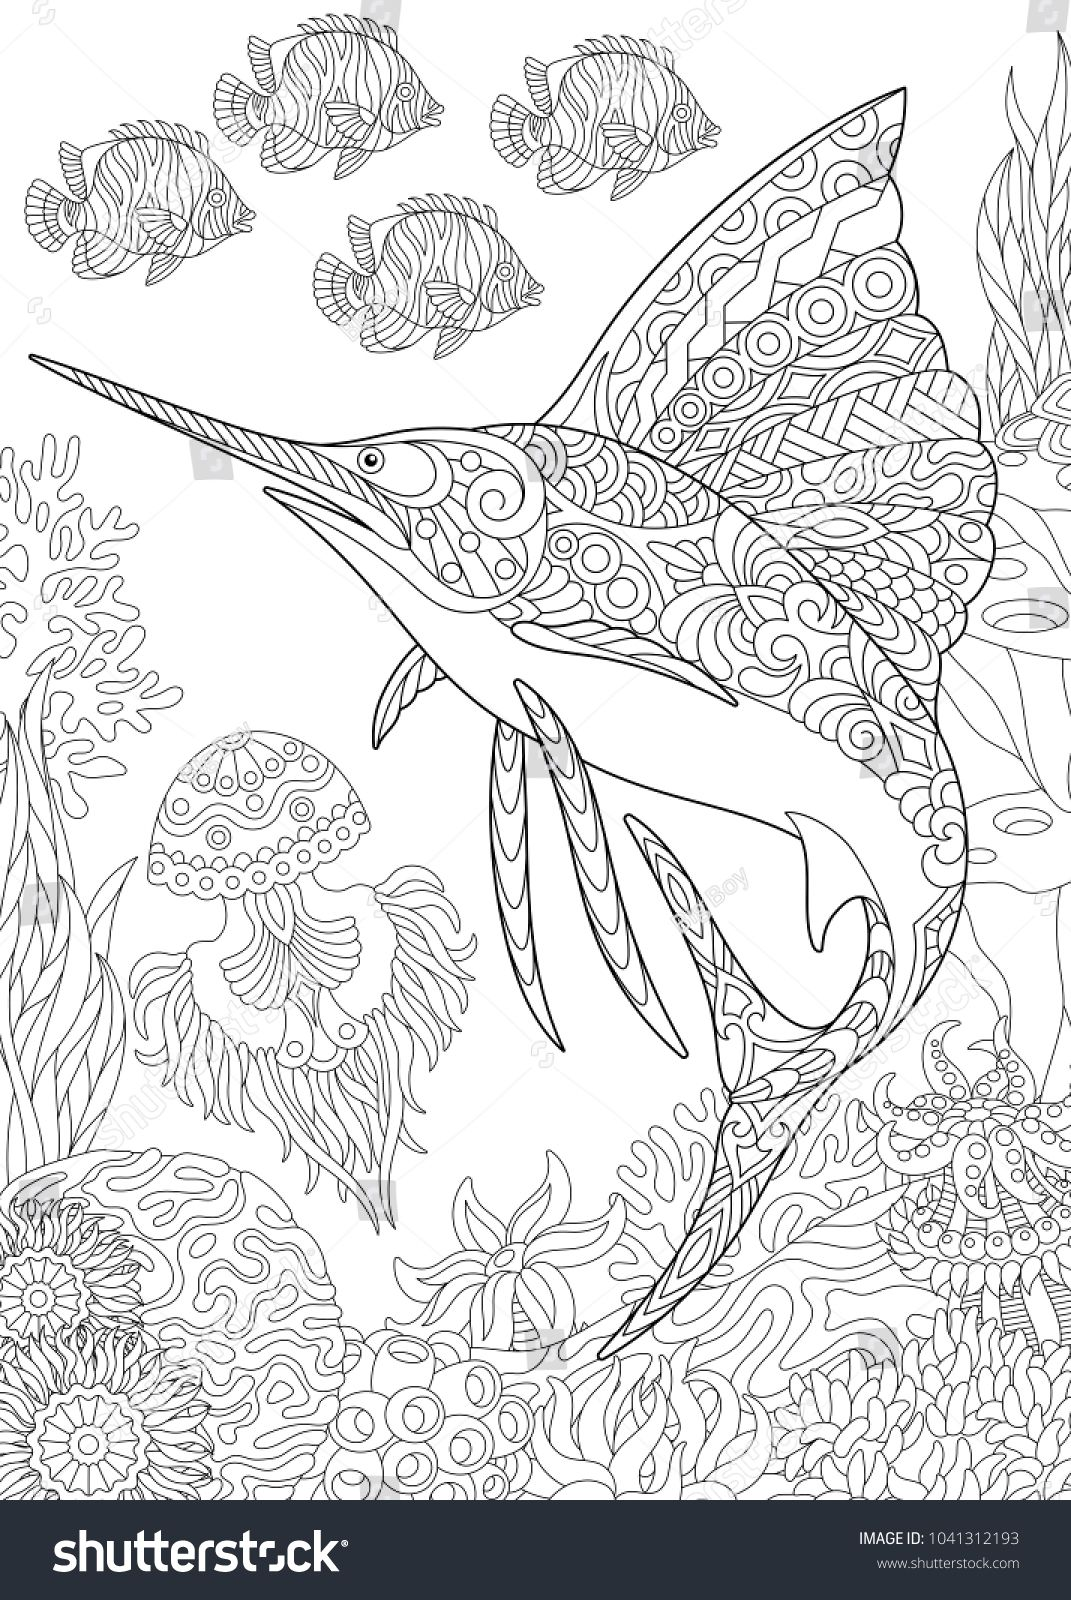 Coloring Page For Adult Colouring Book Underwater Background With Sailfish Jellyfish Tropical Fishes And Ocean Plants Antistress Freehand Sketch Drawing